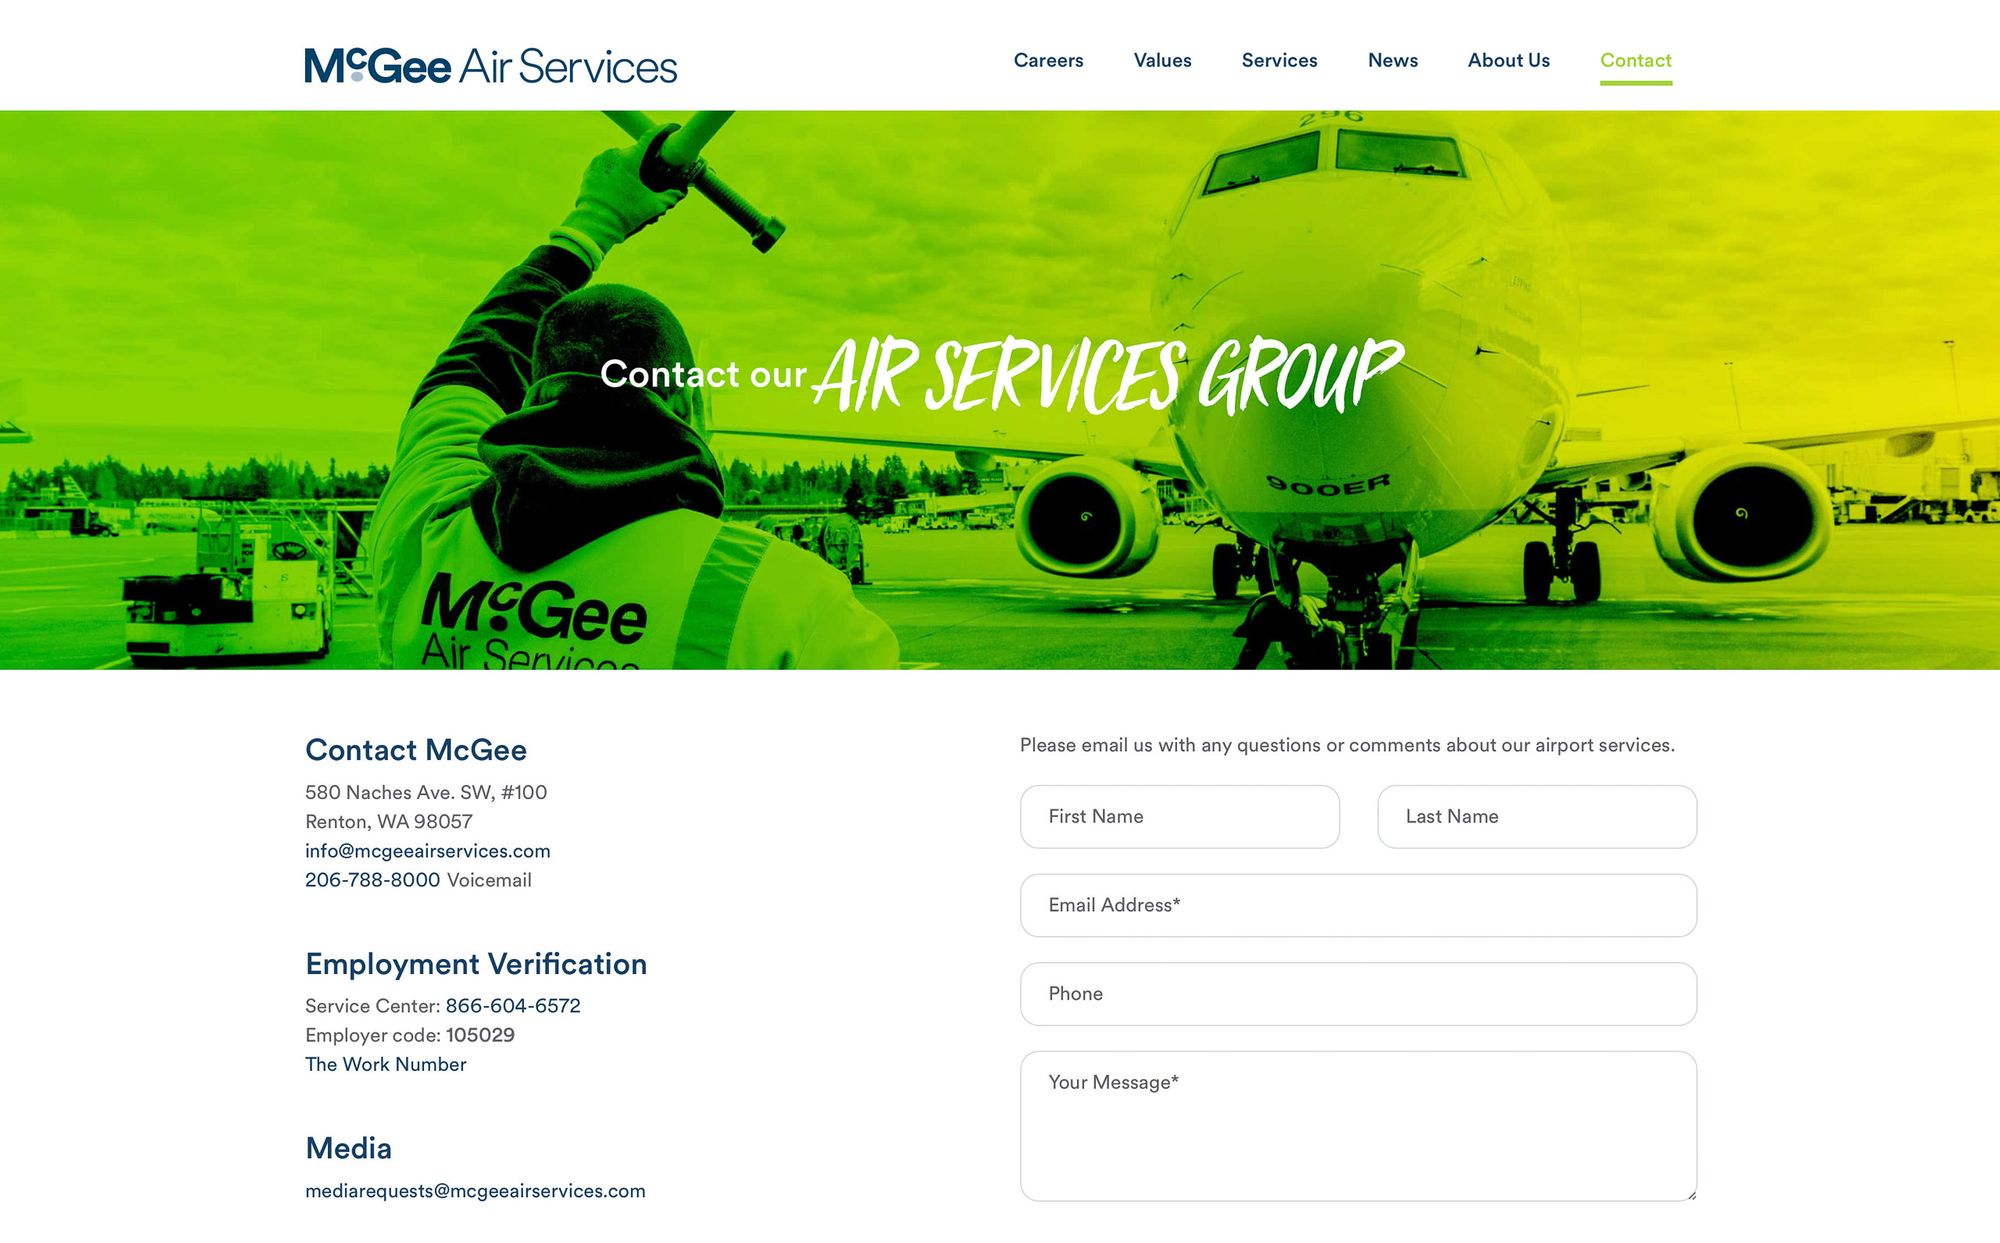 mcgee.airservices_005.jpg